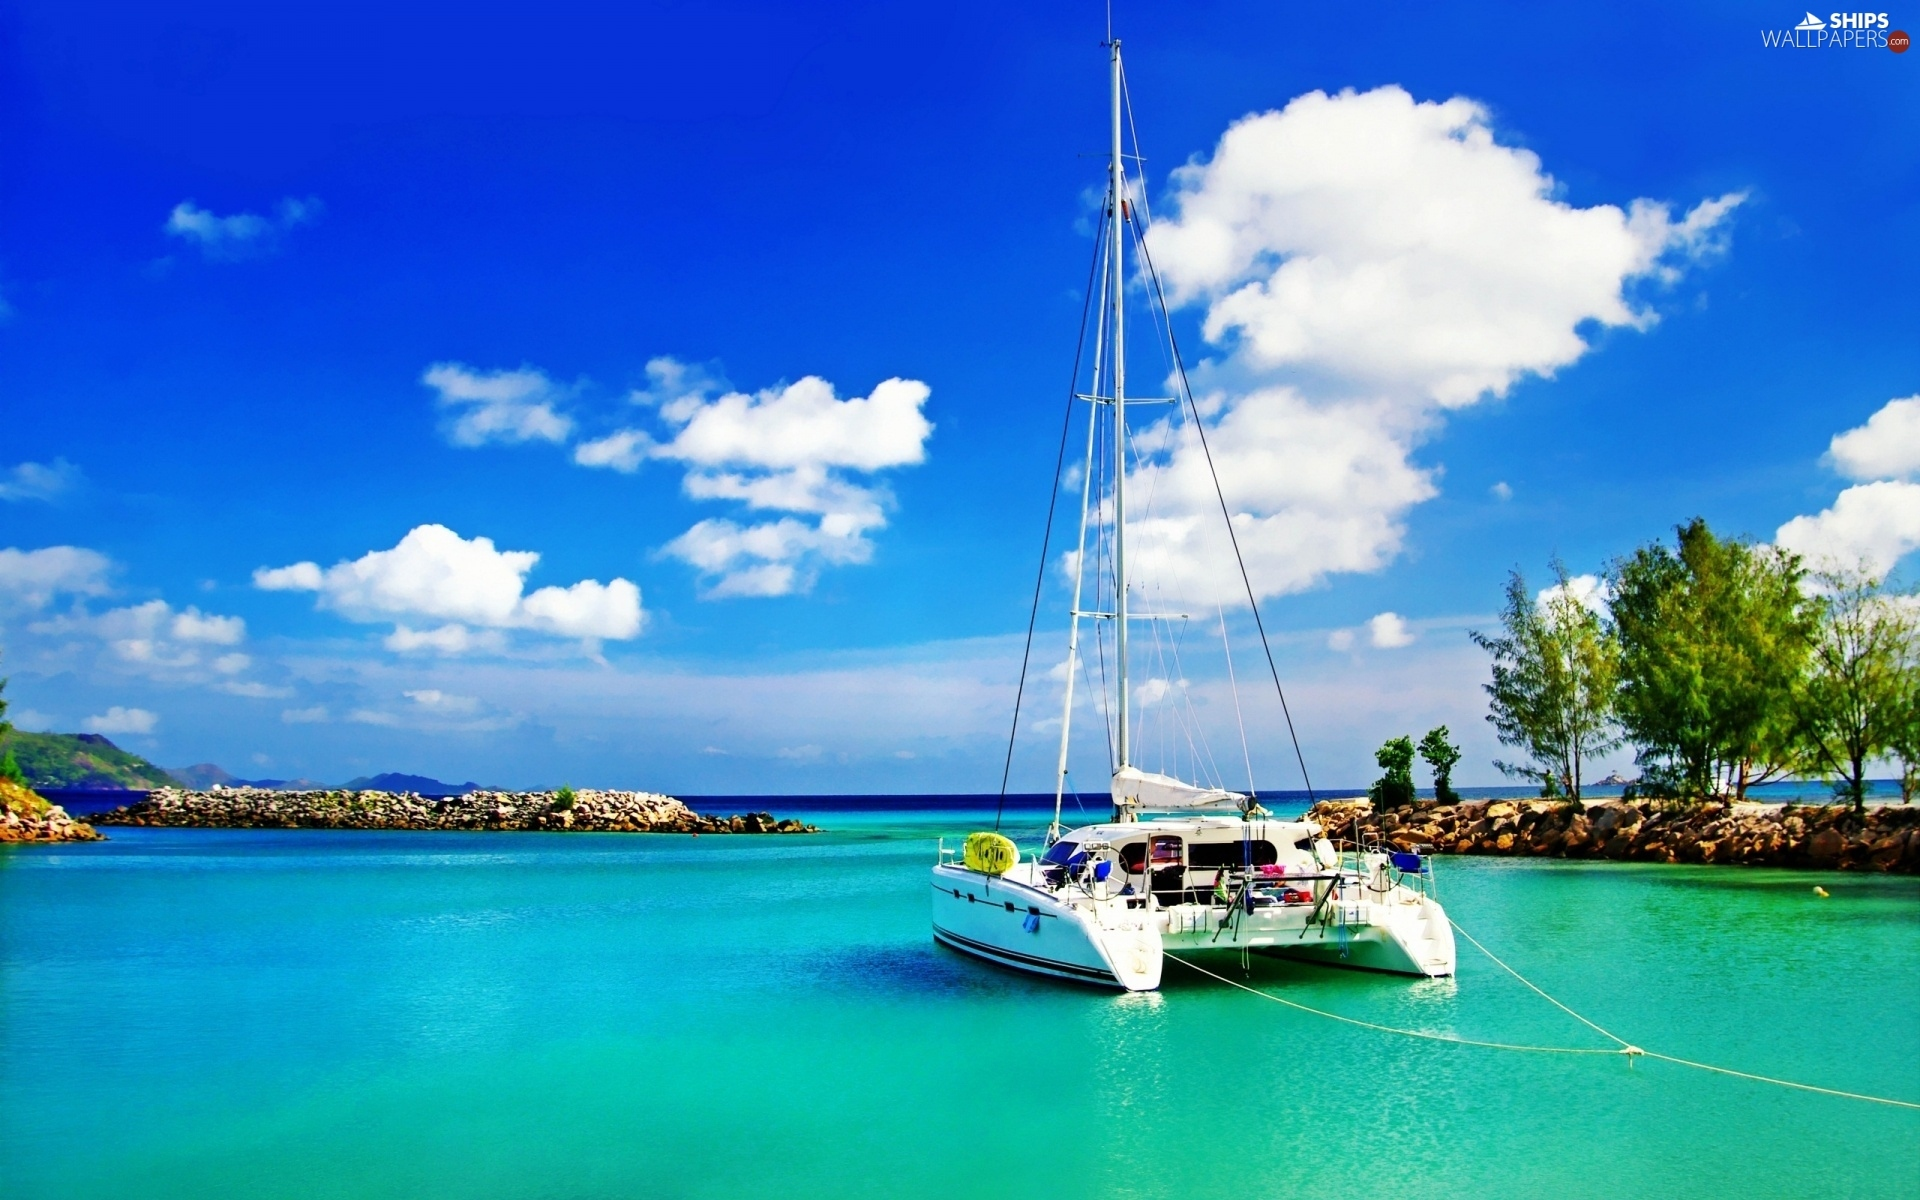 clouds, Catamaran, sea